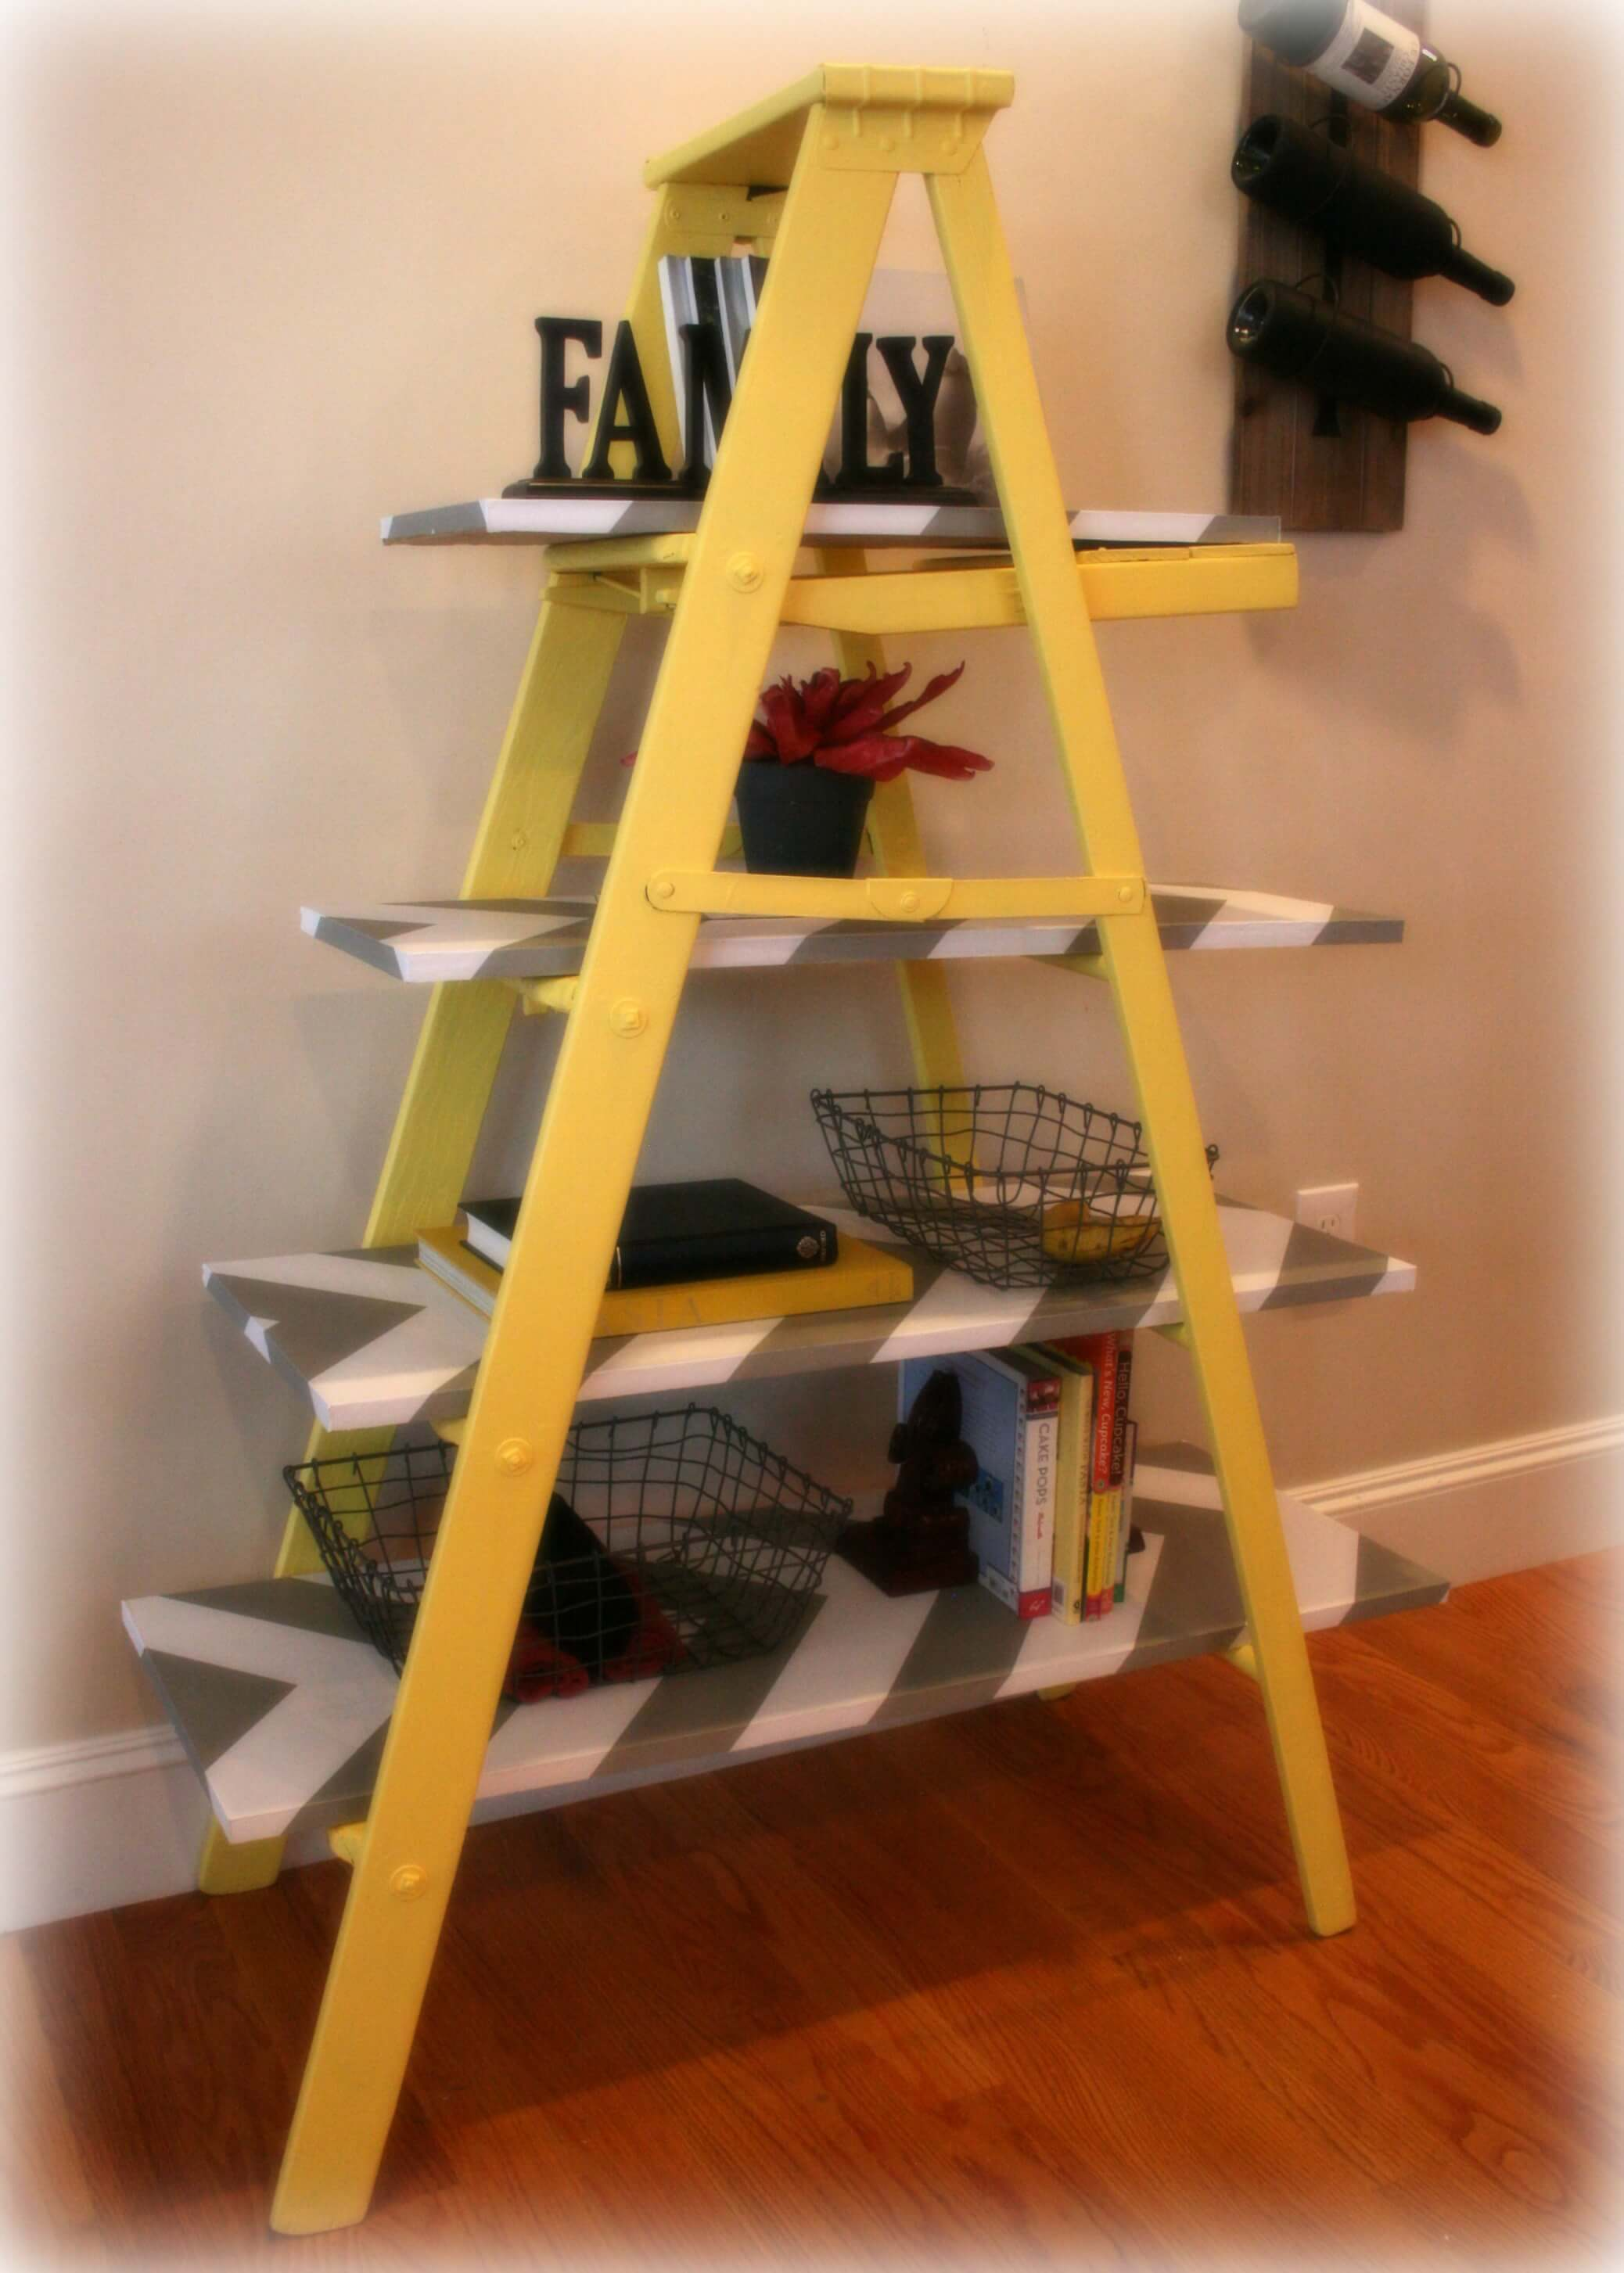 Vintage Yellow Wooden Leaning Ladder Shelf Build It Or